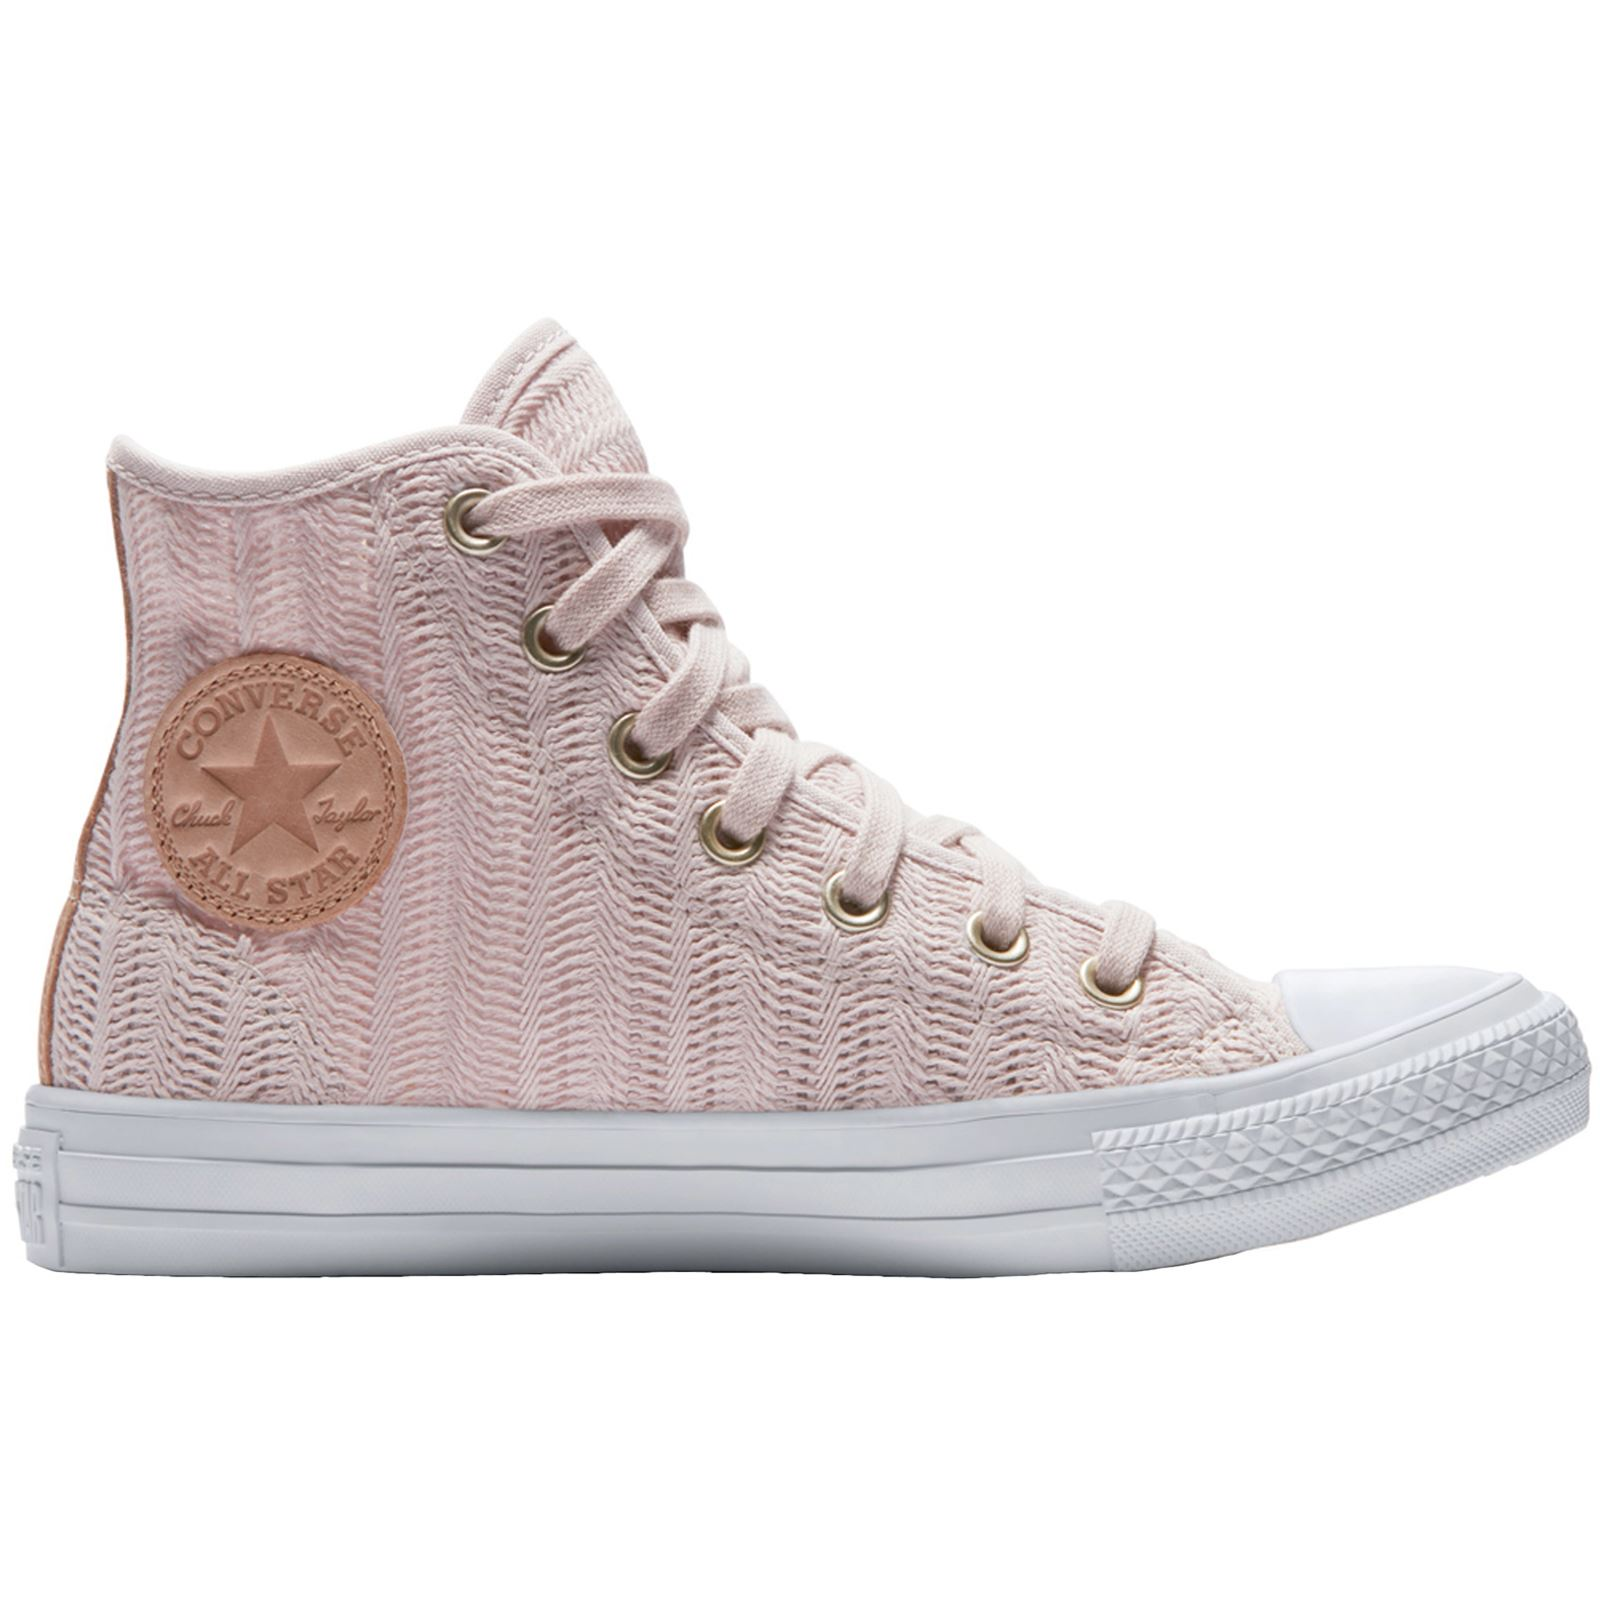 Converse Chuck Taylor All Star Hi Barely Rose Tan Womens Mesh High Top Trainers